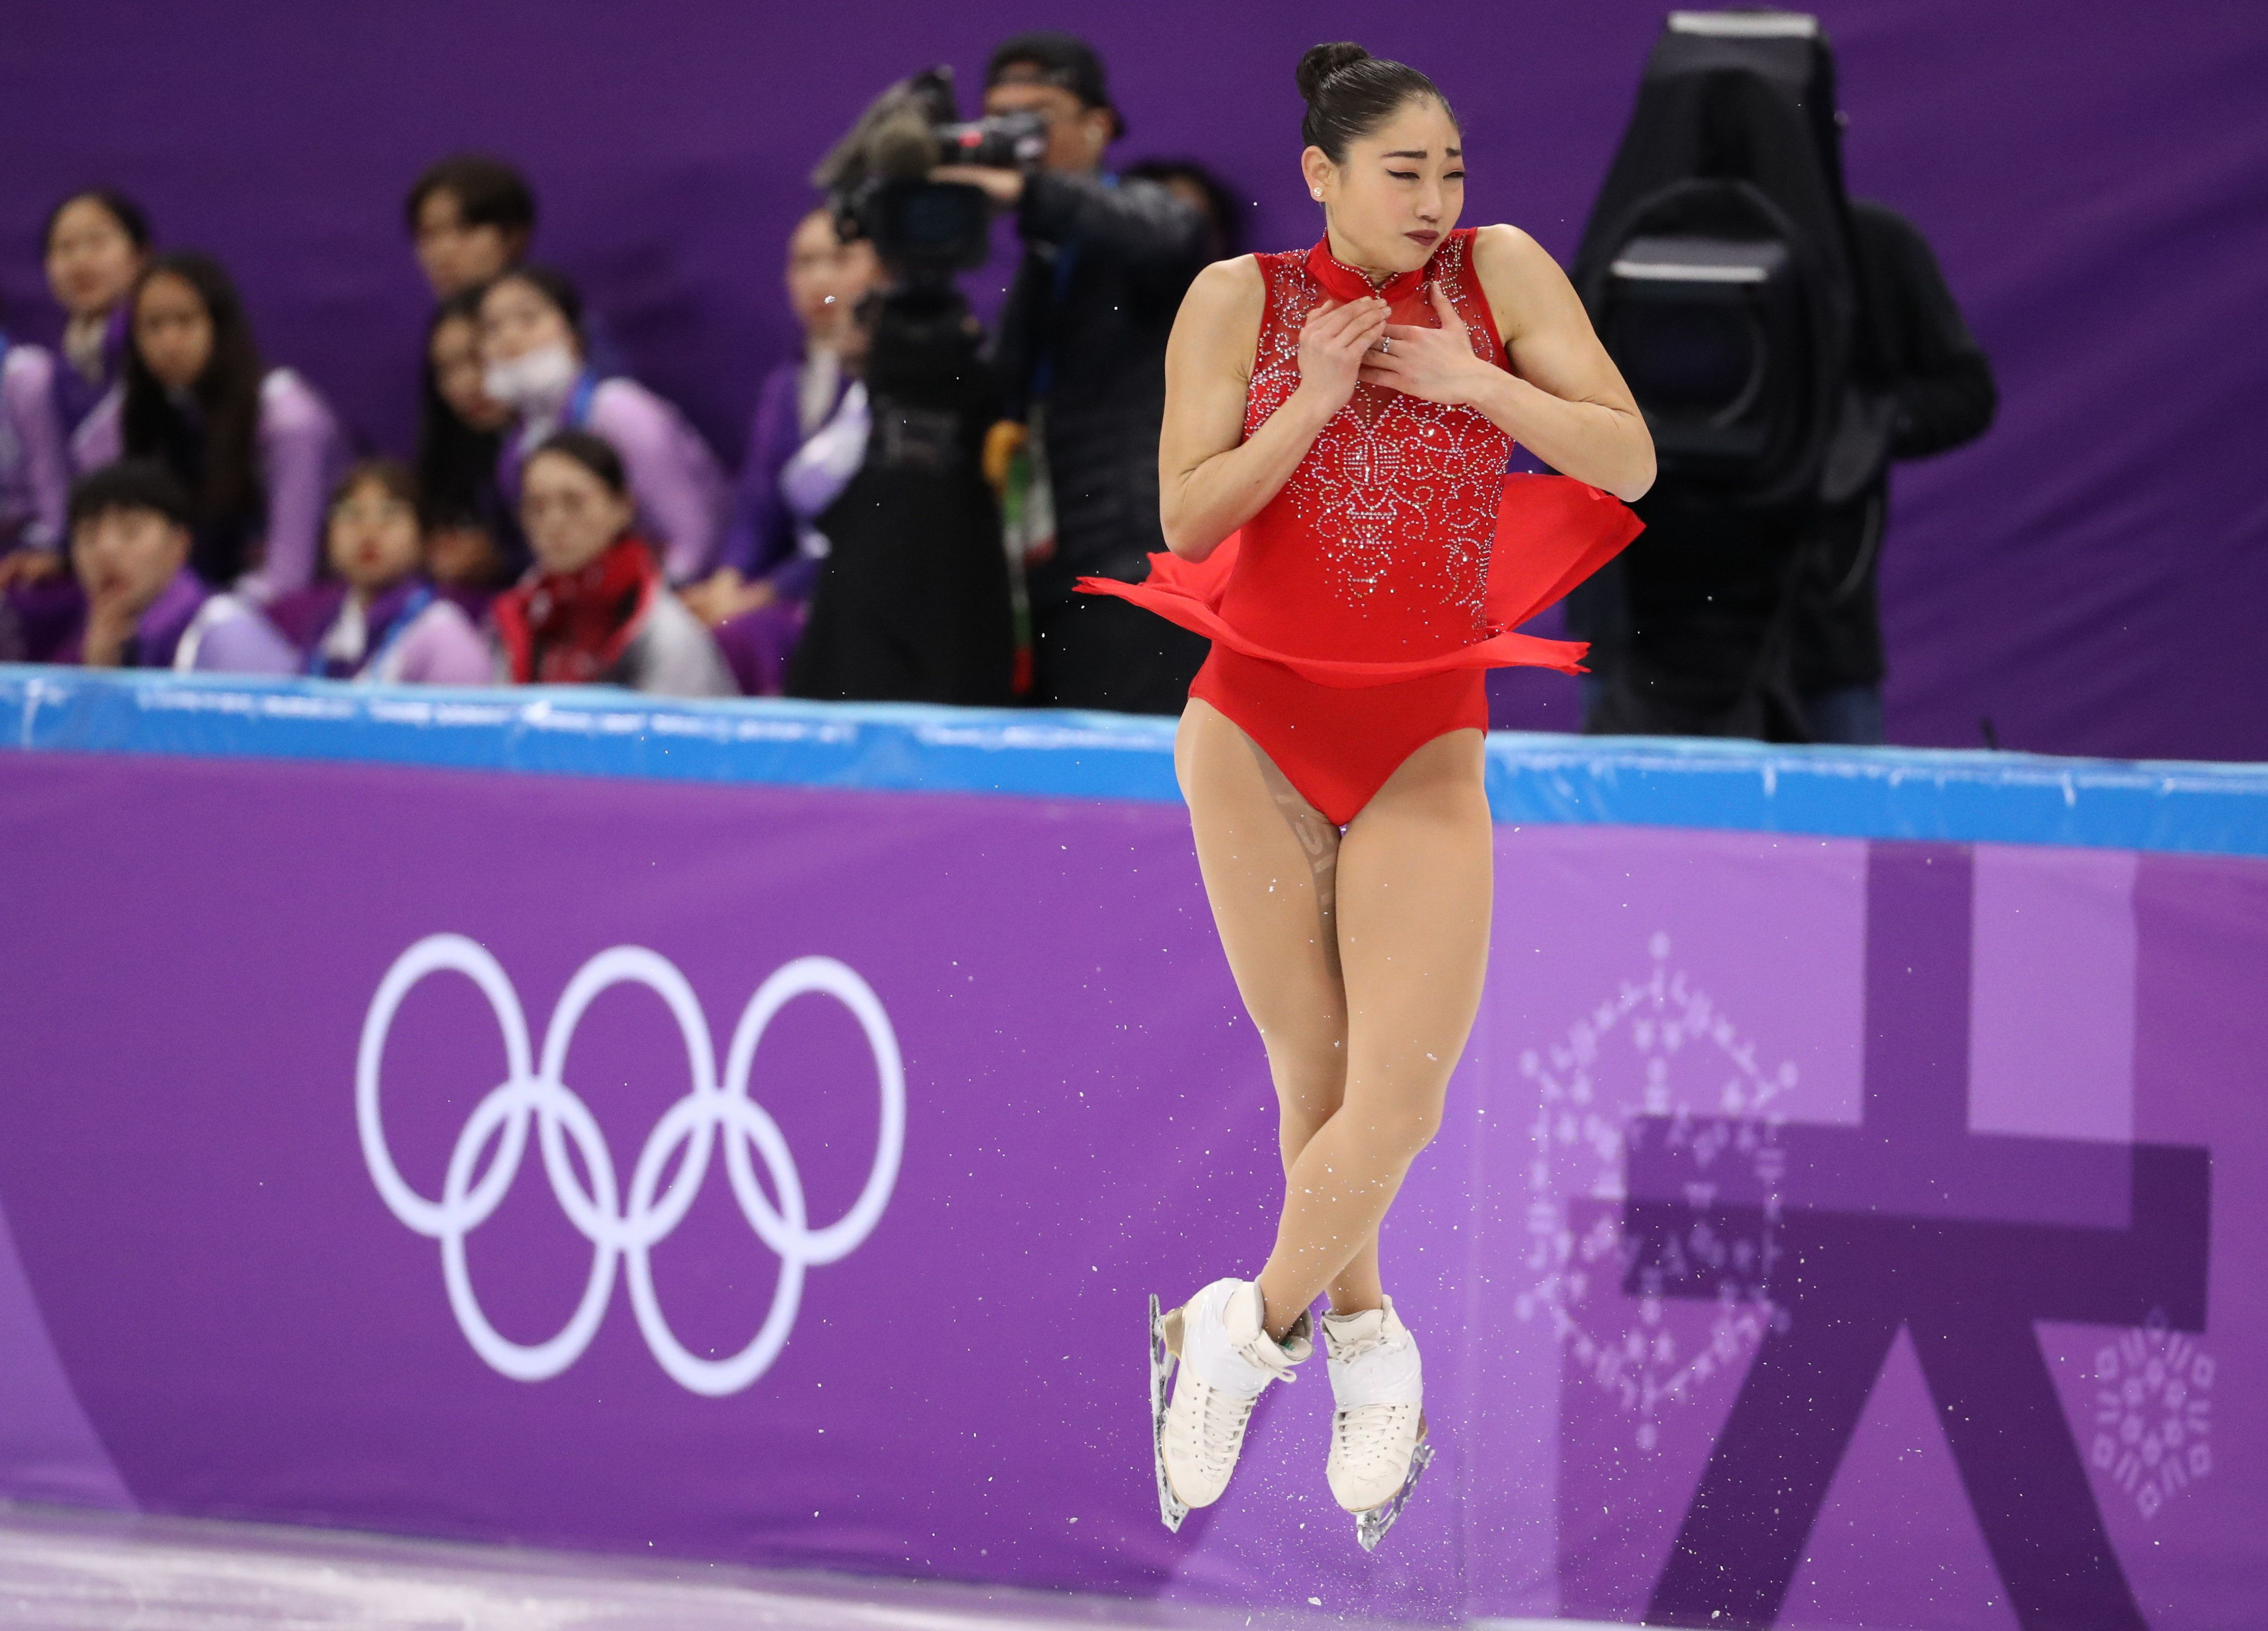 Figure Skating – Pyeongchang 2018 Winter Olympics – Team Event Women's Single Skating Free Skating competition final – Gangneung Ice Arena - Gangneung, South Korea – February 12, 2018 - Mirai Nagasu of the U.S. competes. REUTERS/Lucy Nicholson